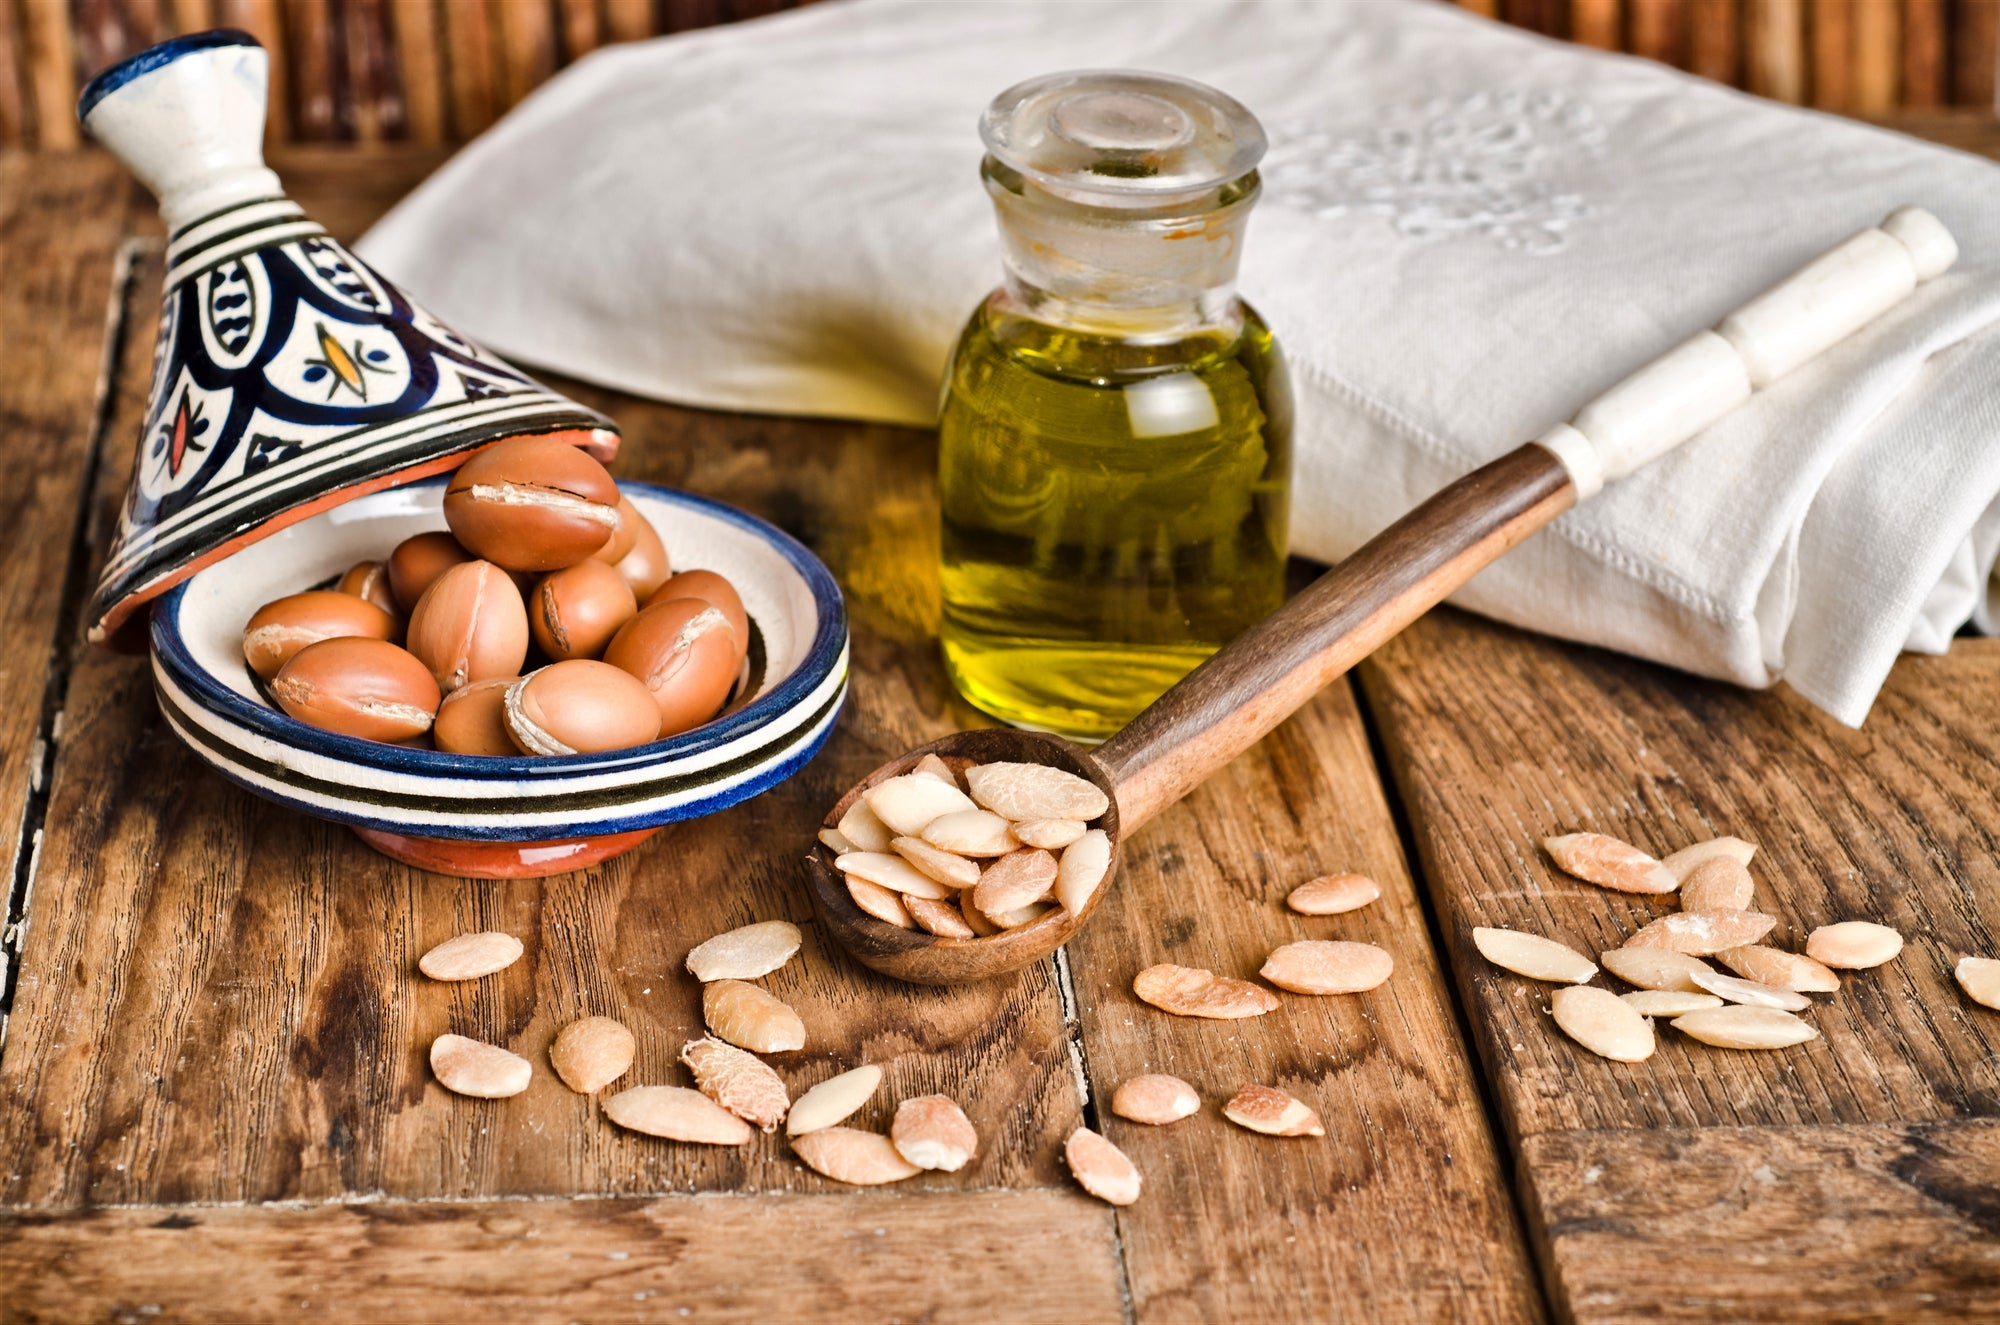 Using Argan oil for soft, shiny, and moisturized hair